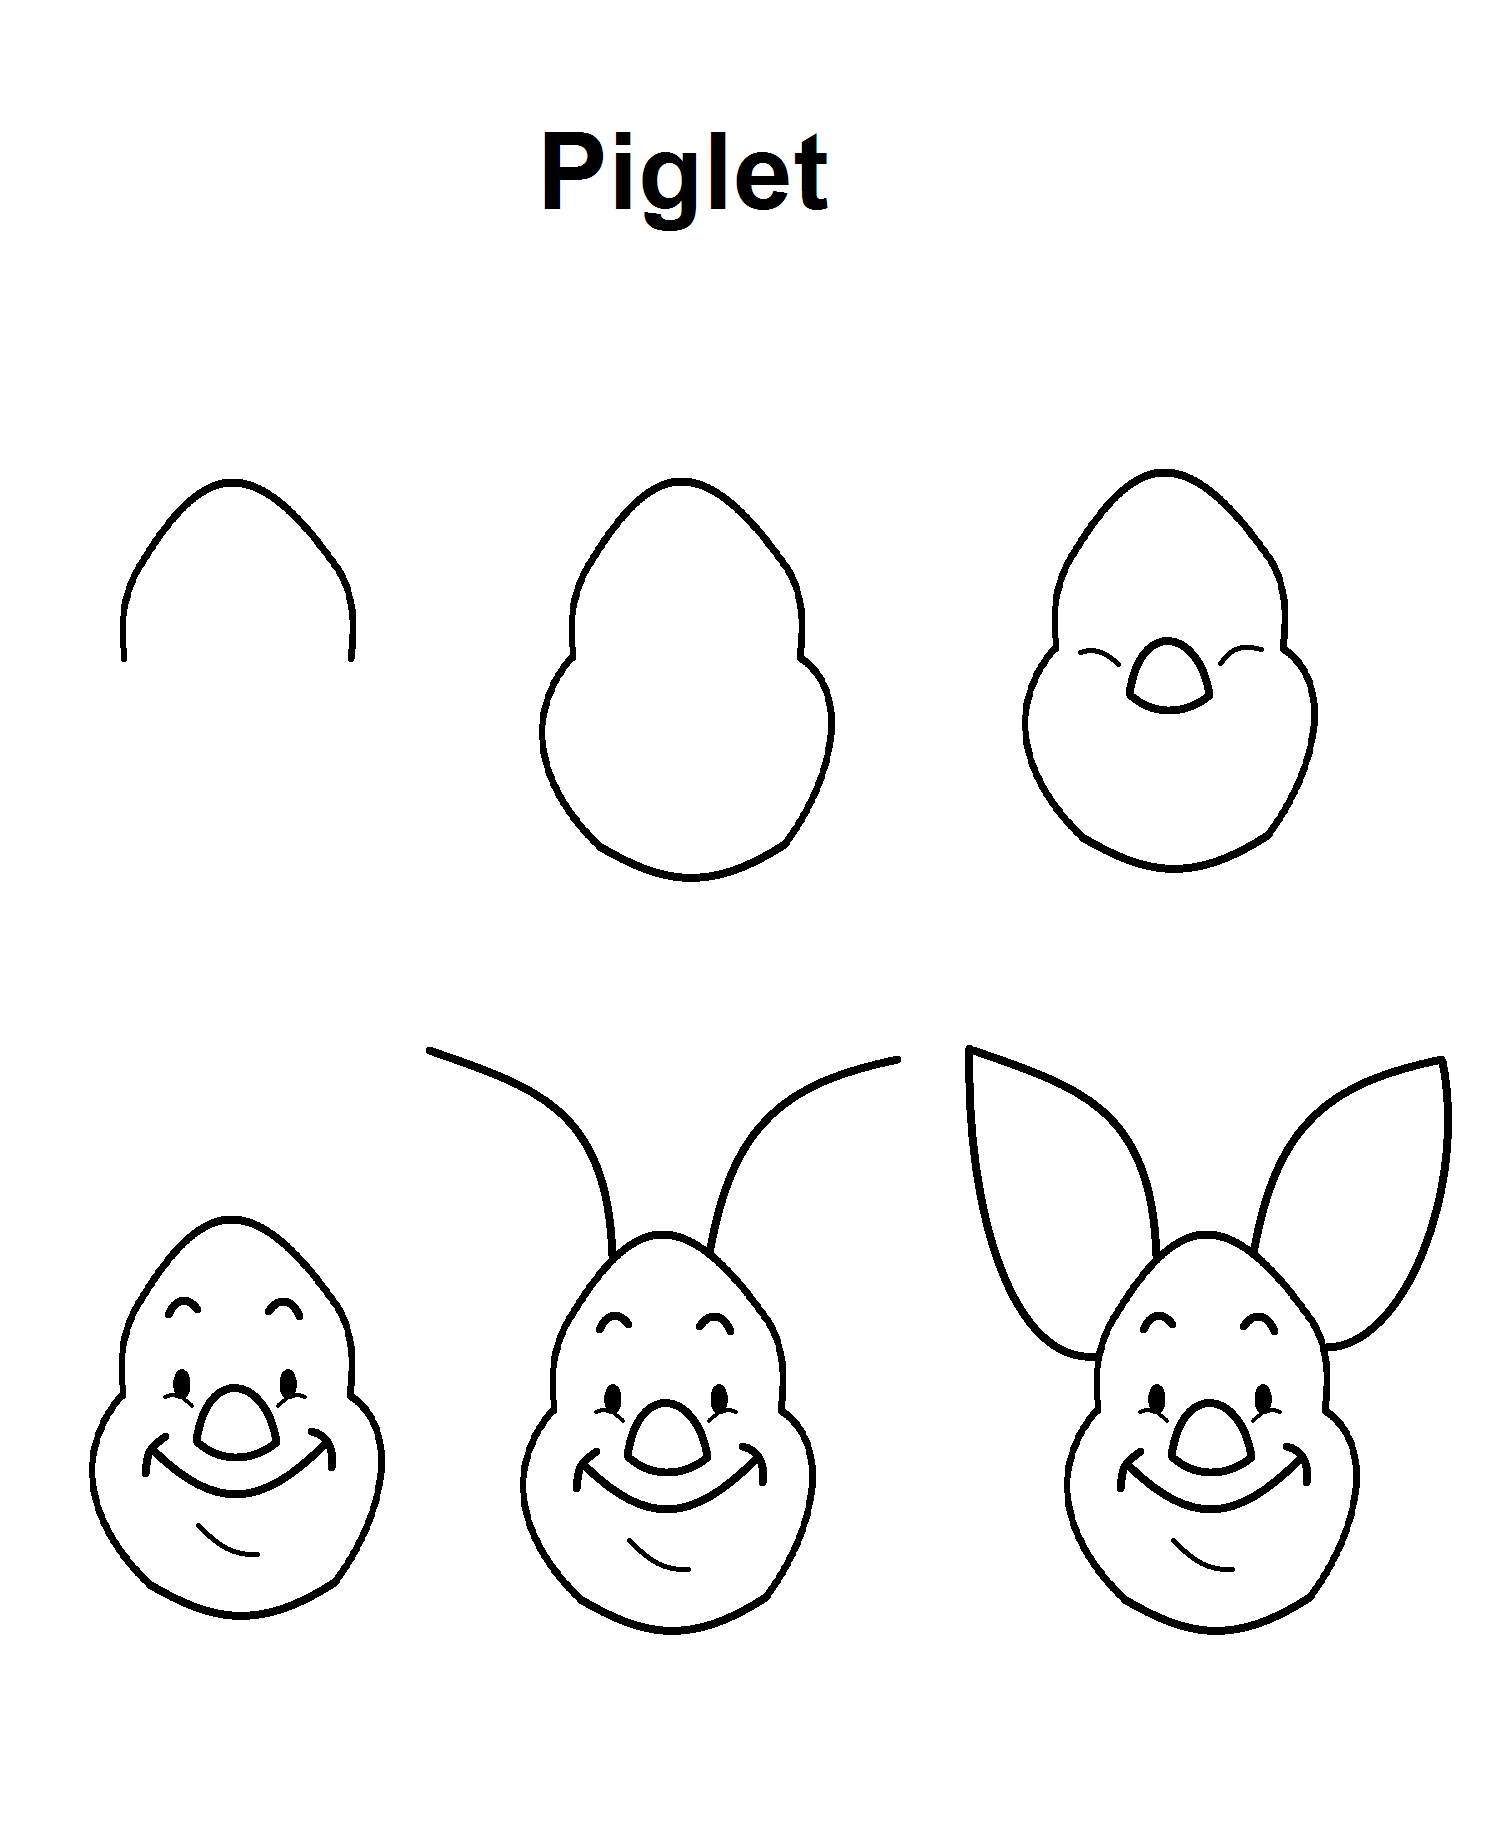 how to draw disney characters step by step for kids pin by carol mays on how to draw cartoon drawings draw characters step how for step disney kids by to